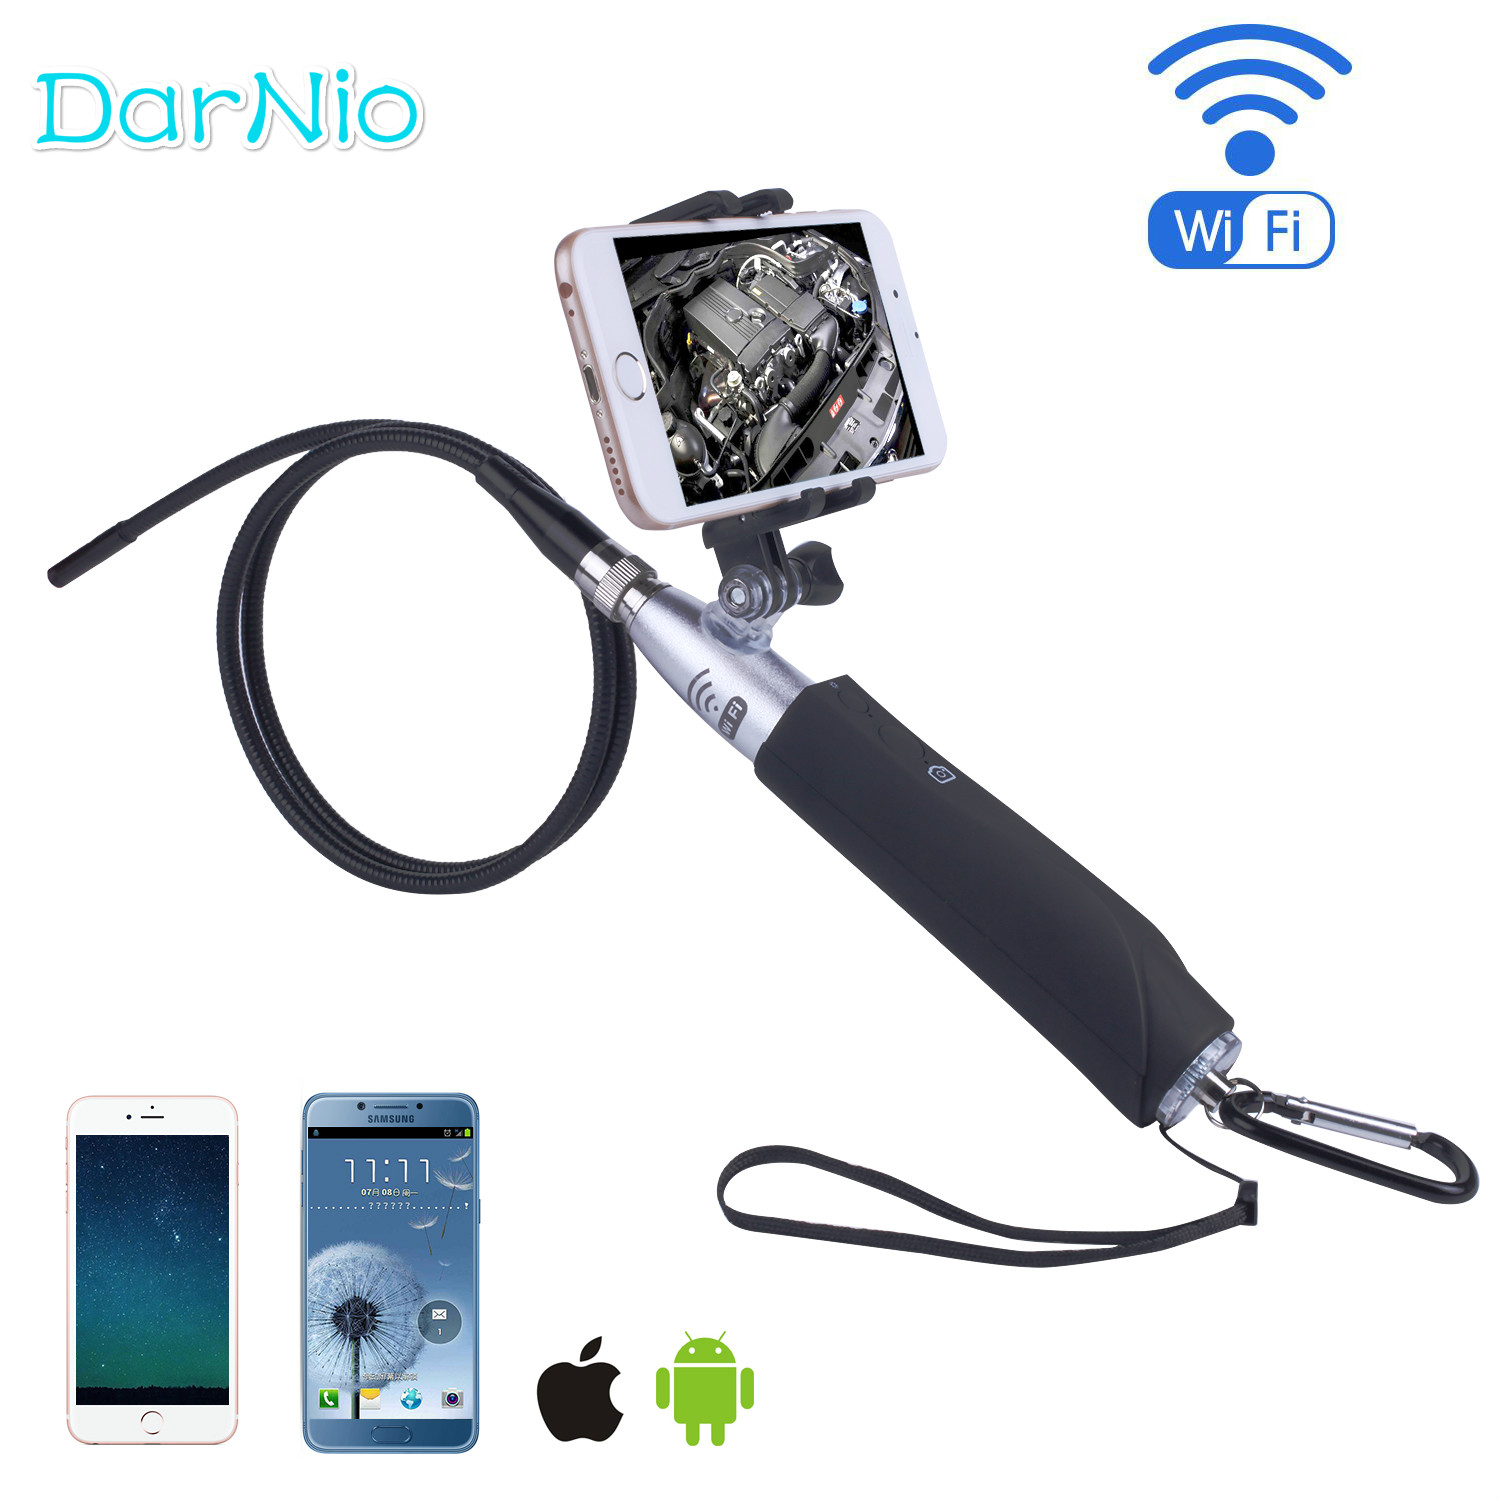 Black 720P Wireless WIFI Endoscope 2.0Mega Pixels Inspection Snake Camera 1M/3M Cable 8mm 6 LED Borescope for Android Iphone Spy image